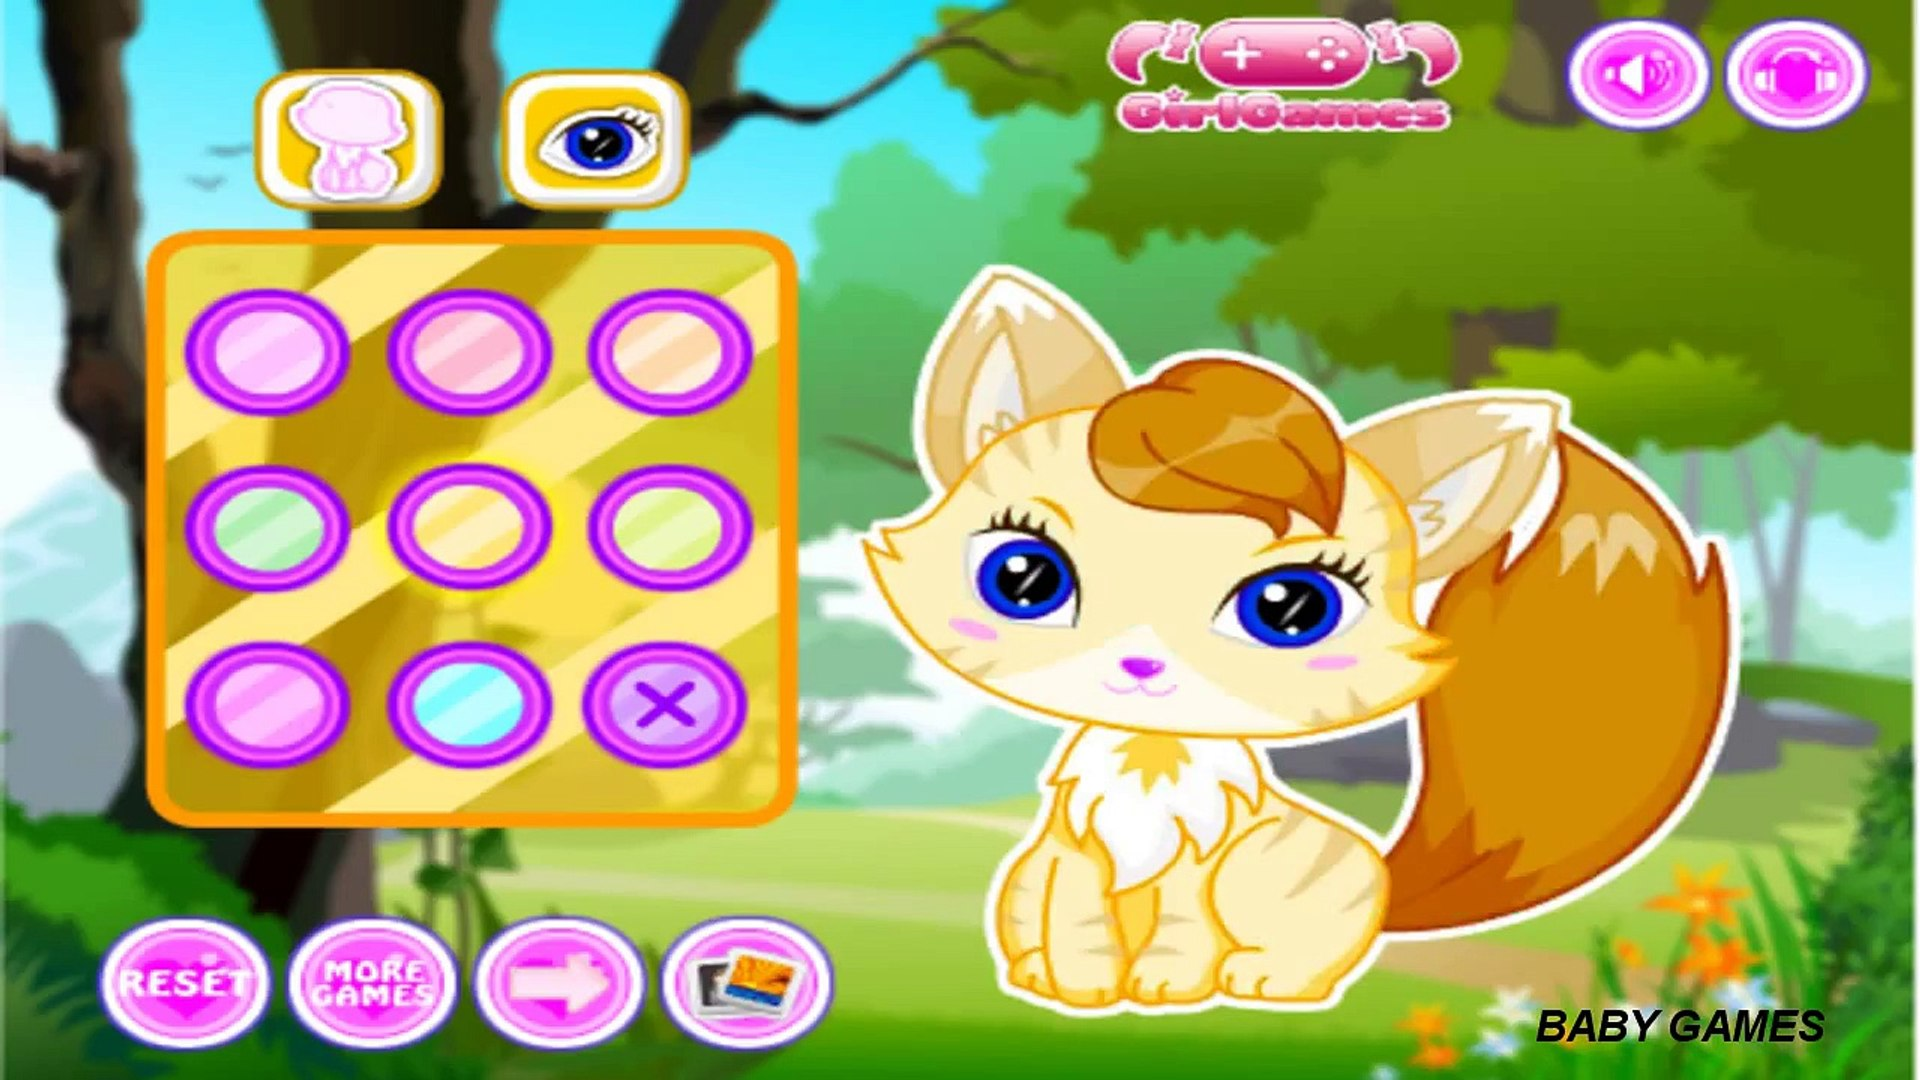 Animals and Pets Foxy Dress Up Funny Games || Kids Baby Games Youtube Videos